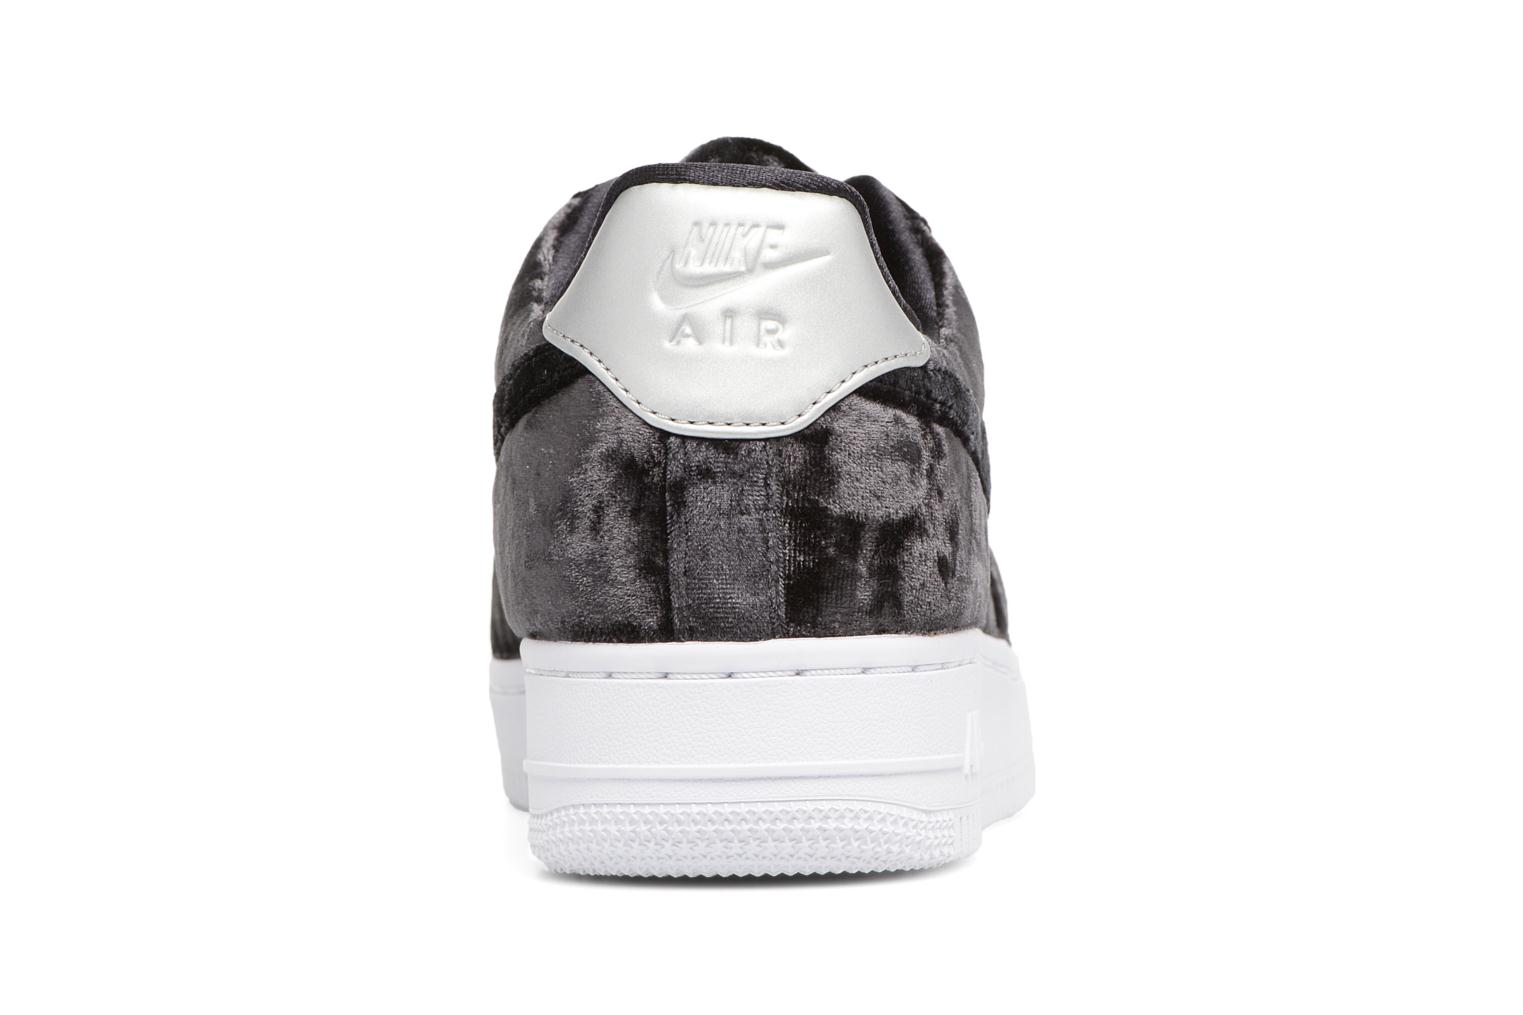 Wmns Air Force 1 '07 Prm Black/Black-Summit White-Metallic Silver